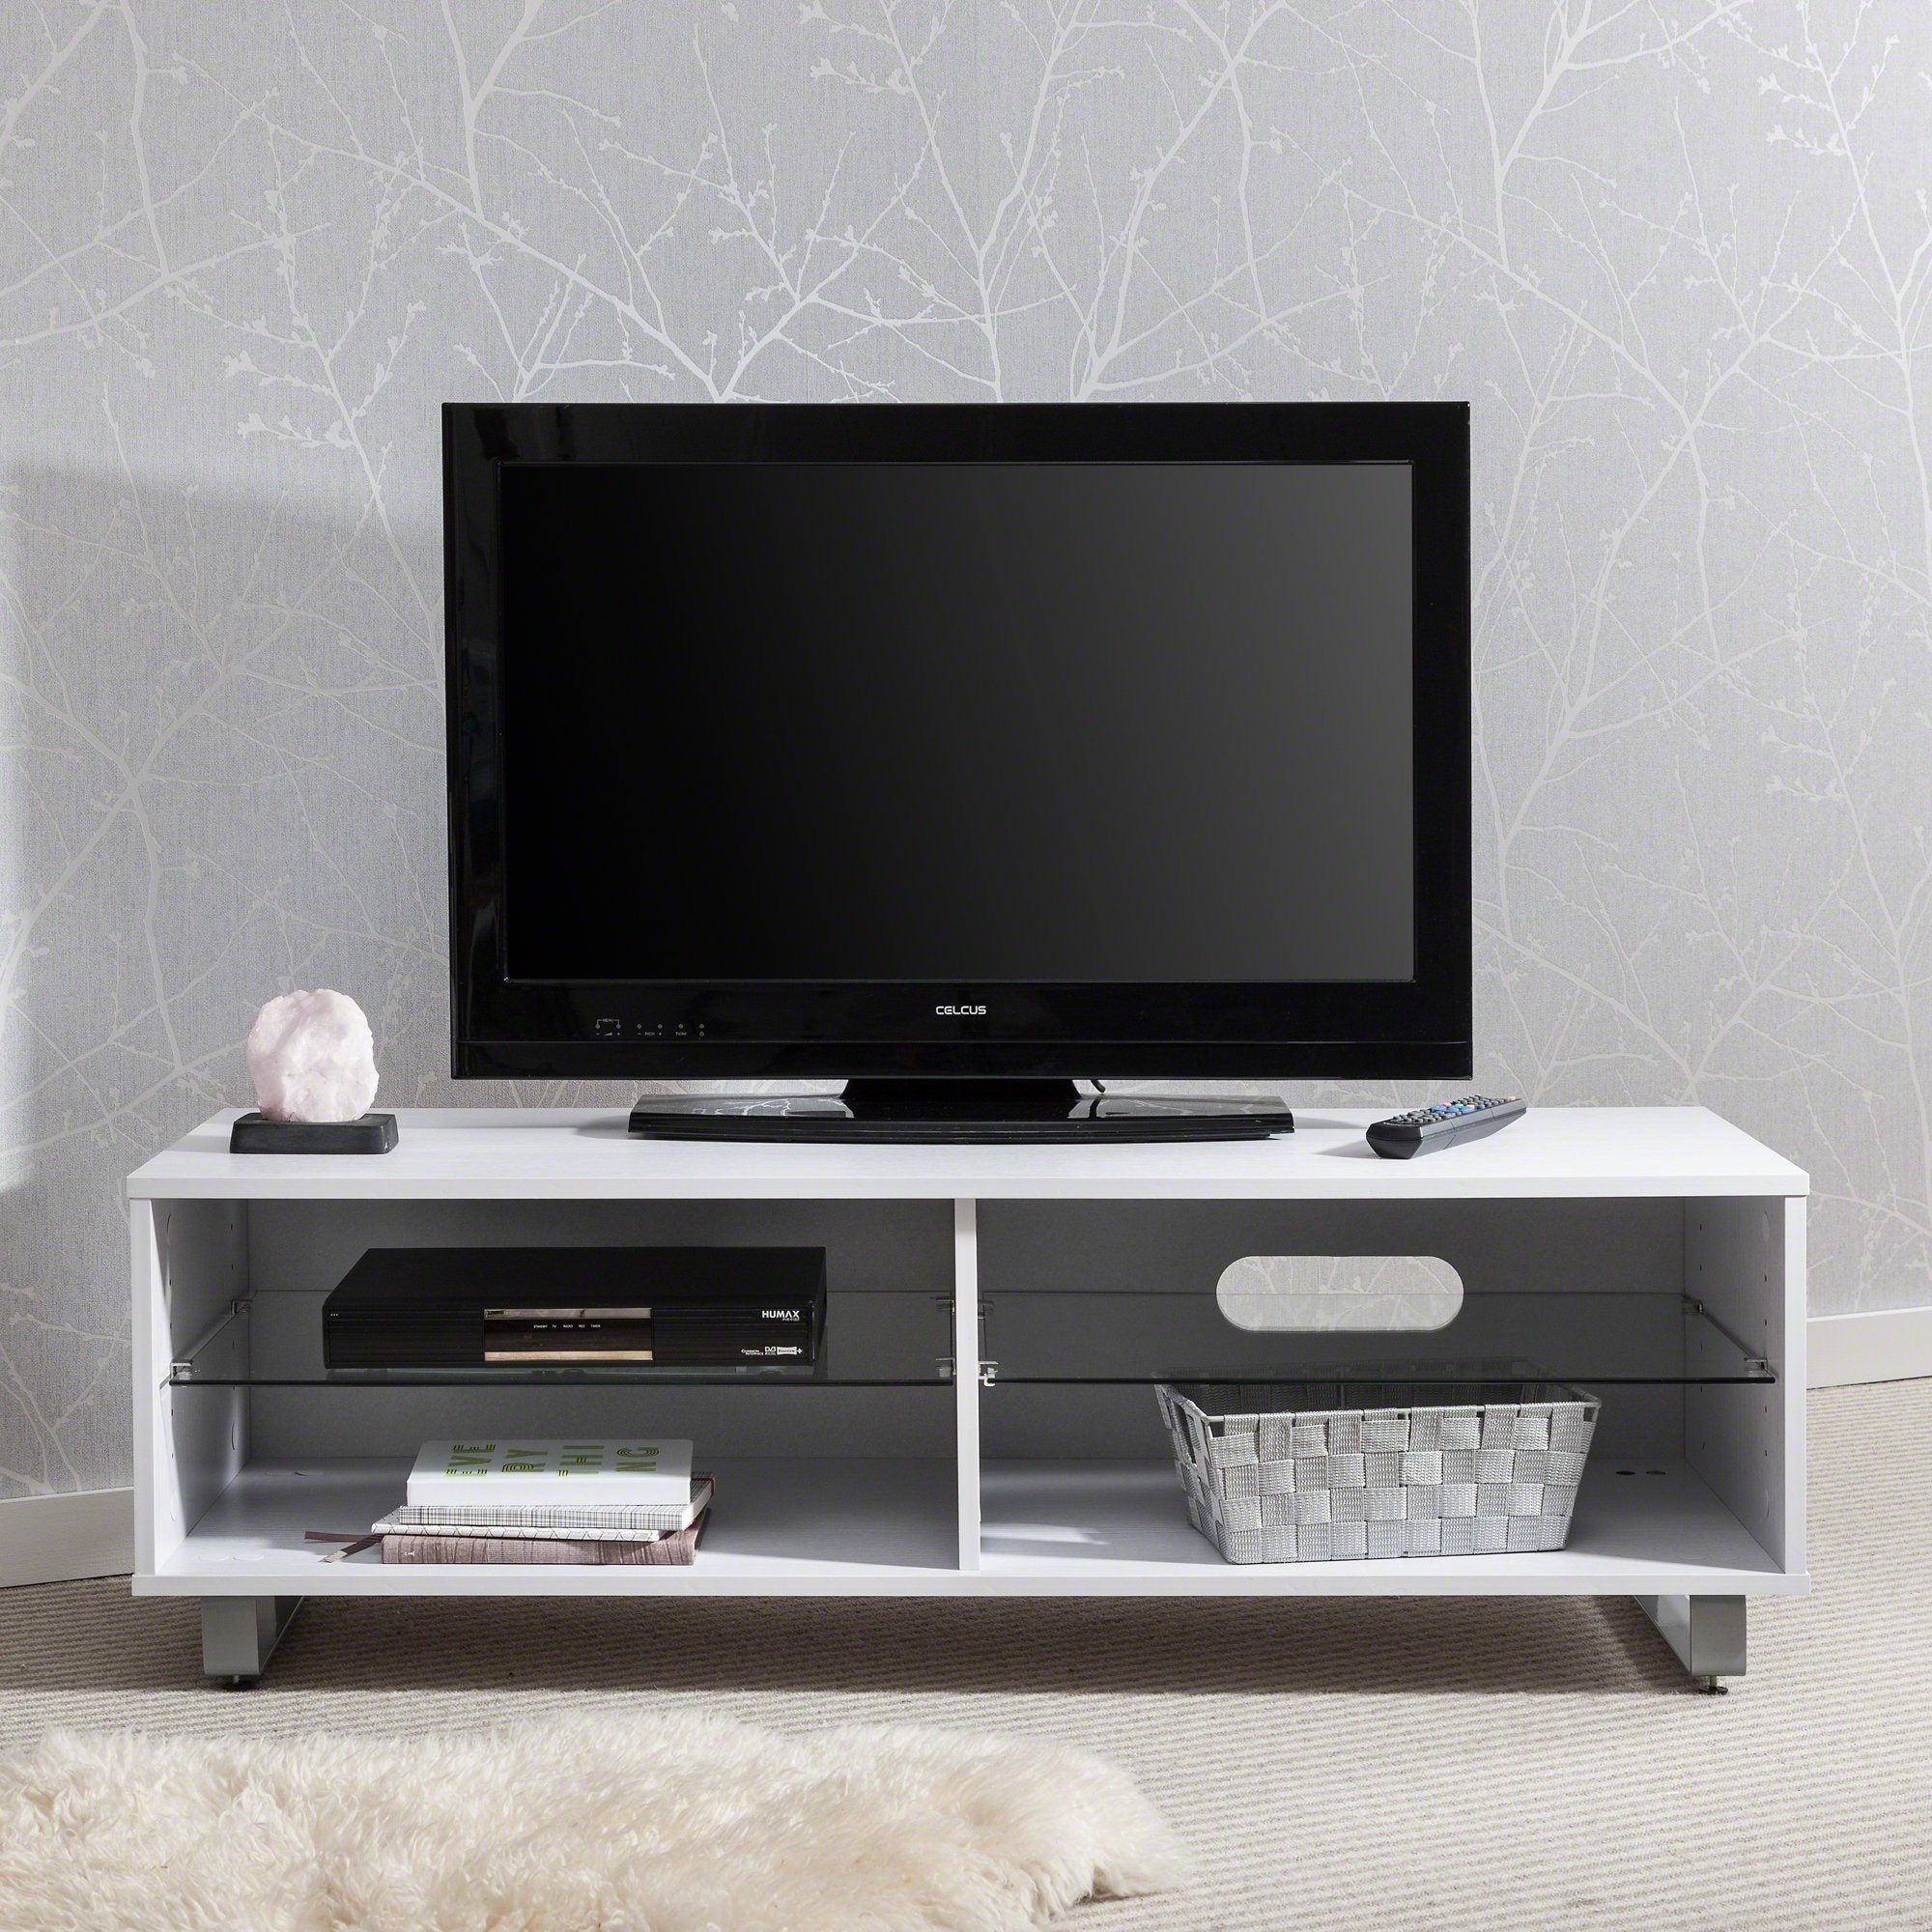 Tv Stand Cabinet With Glass Shelf And Storage Can Hold Up To 60 Inch